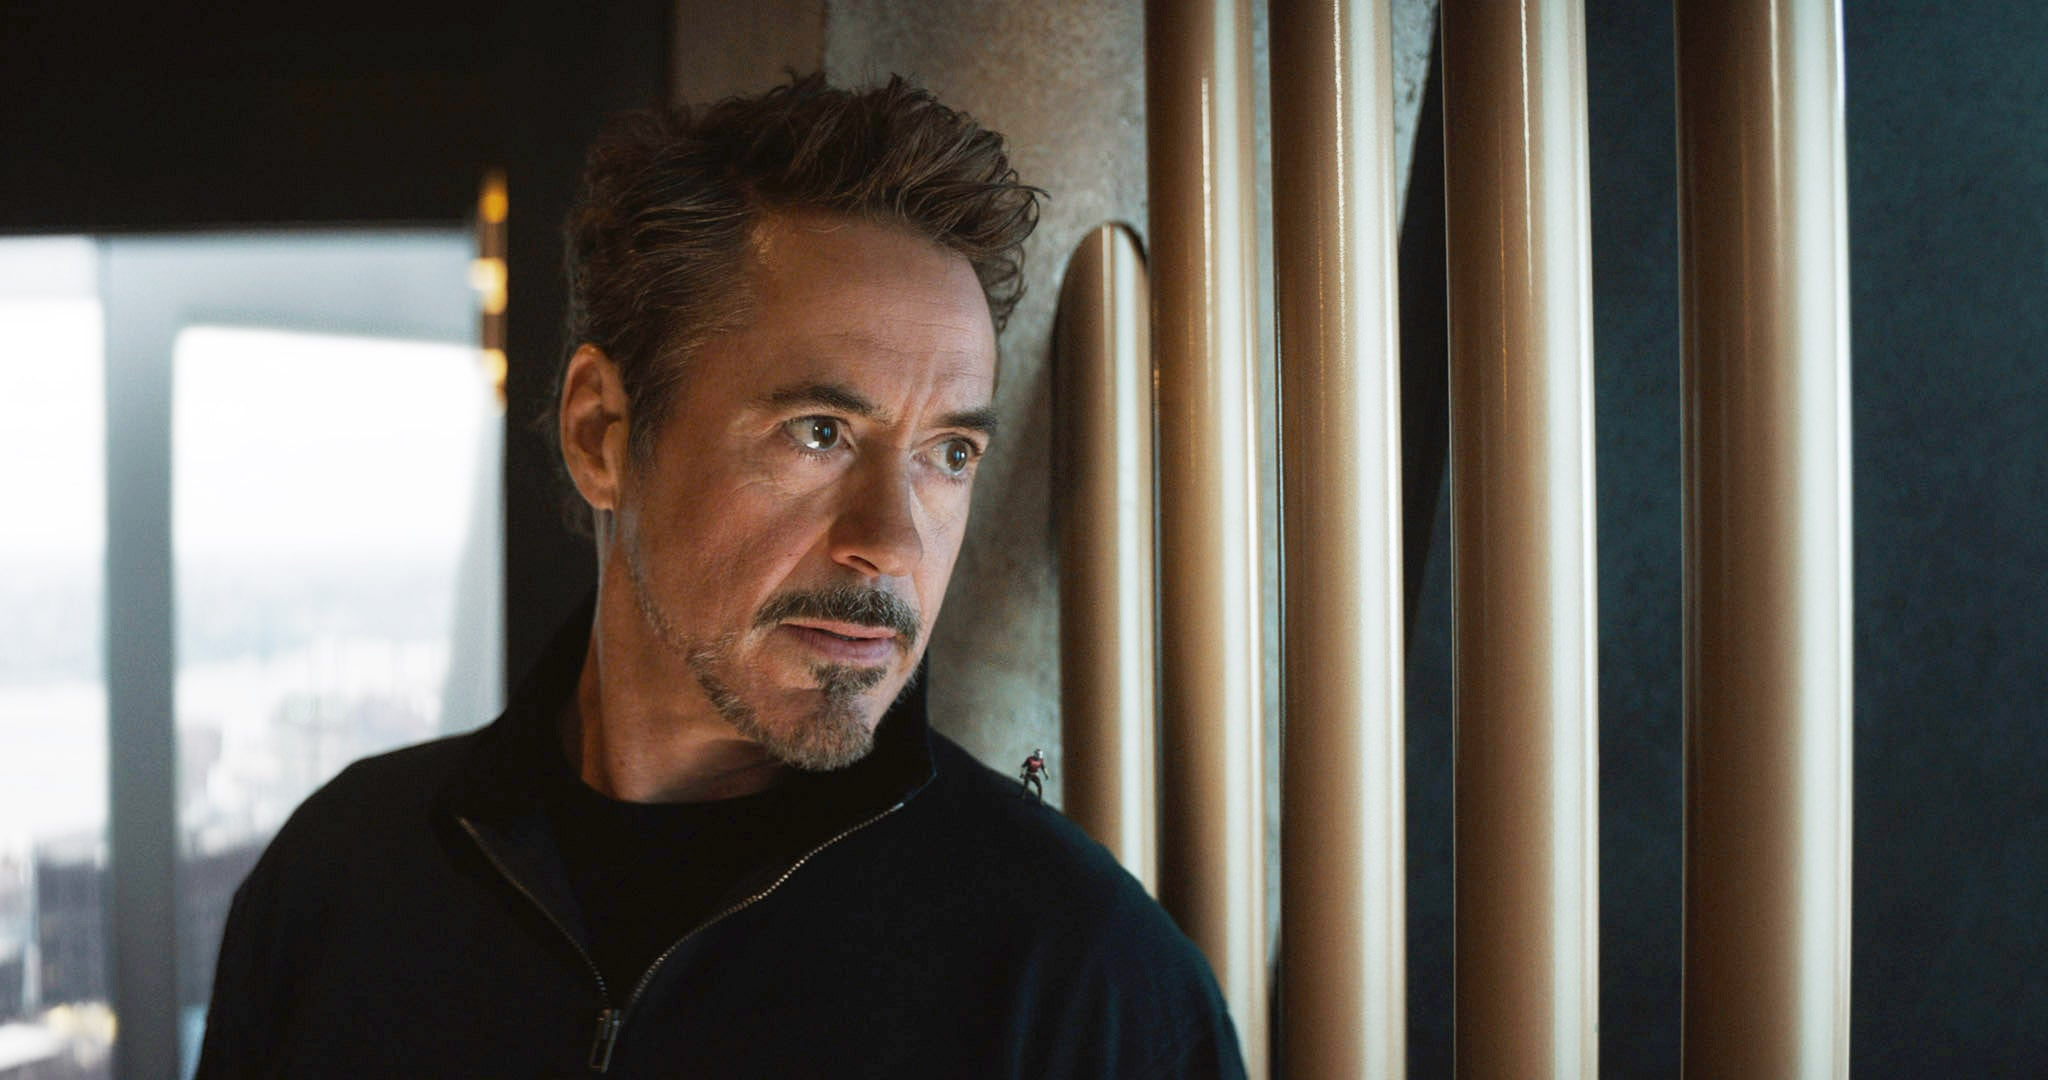 AVENGERS: ENDGAME, (aka AVENGERS 4), Robert Downey Jr. as Tony Stark / Iron Man, 2019.  Walt Disney Studios Motion Pictures /  Marvel Studios / courtesy Everett Collection